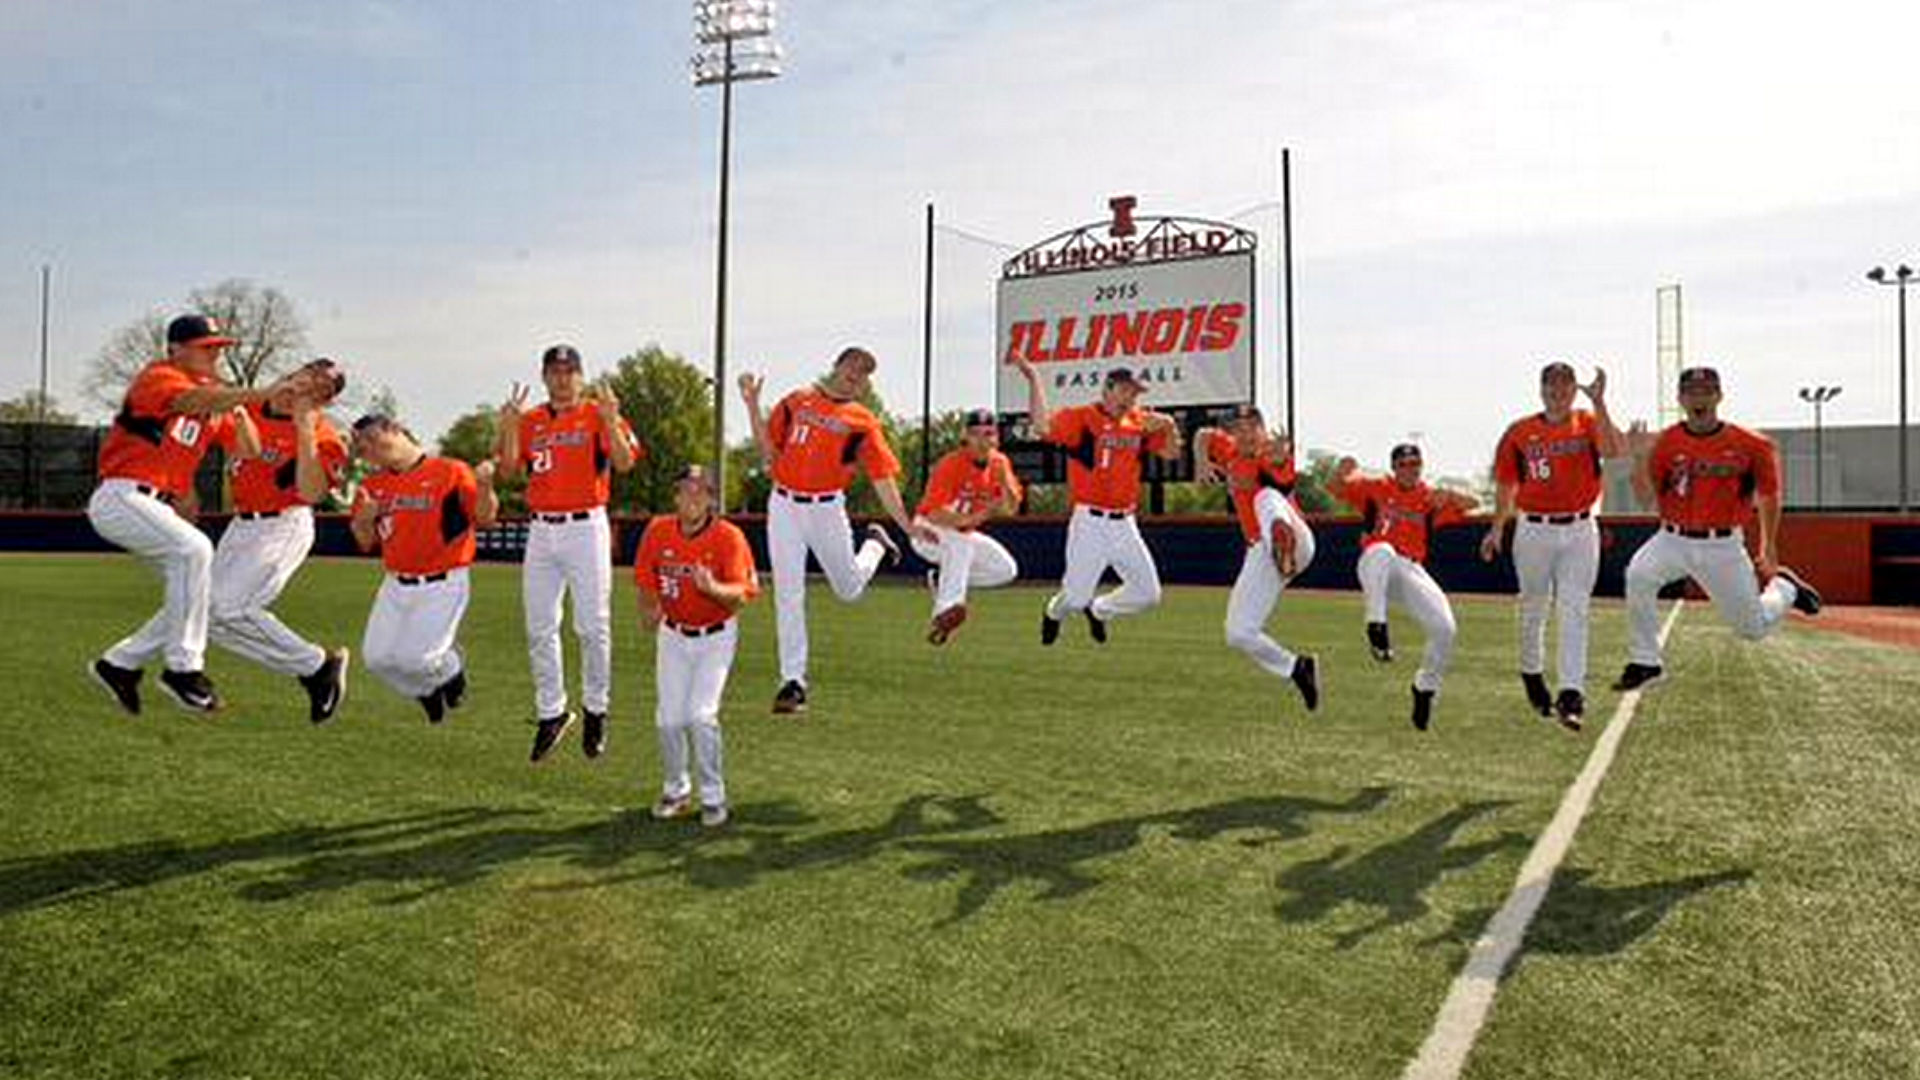 illinois-baseball-team-051415-usnews-gett-ftr